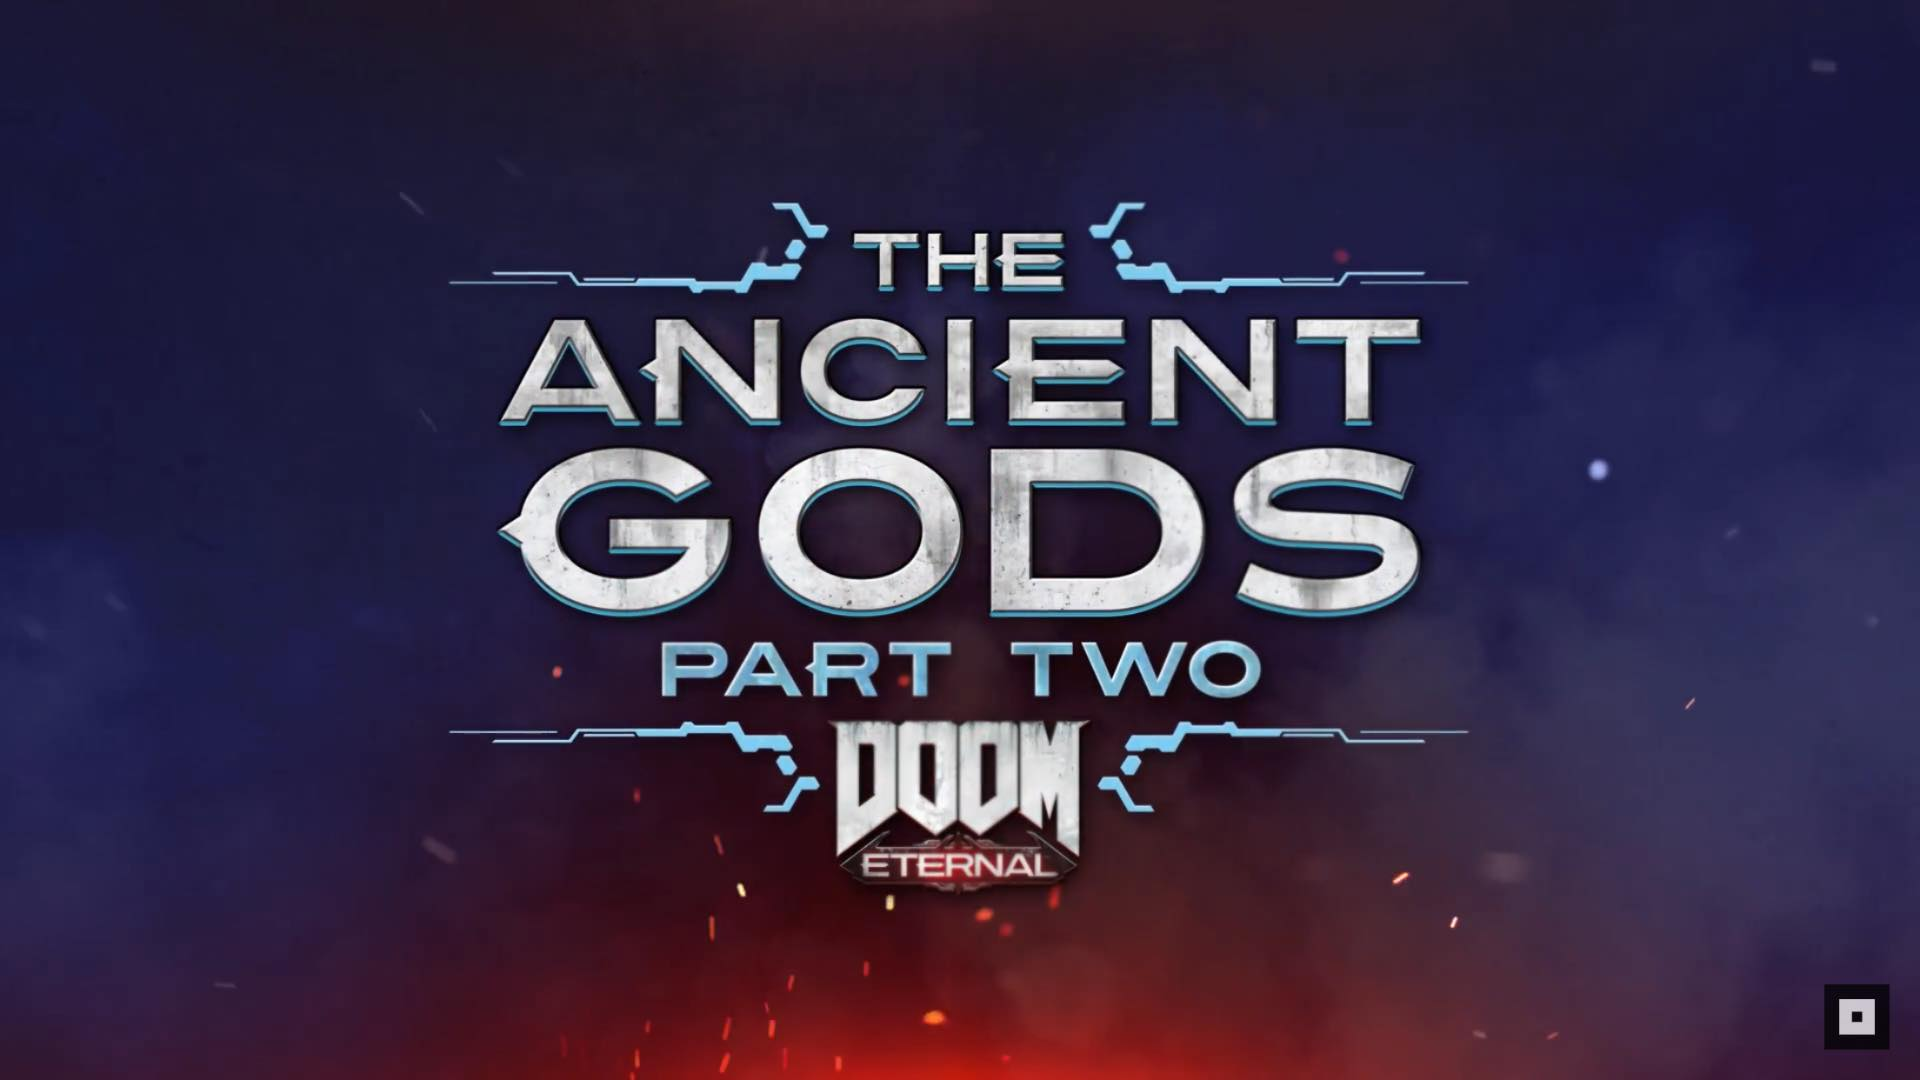 DOOM Eternal: The Ancient Gods Part 2 Trailer Revealed